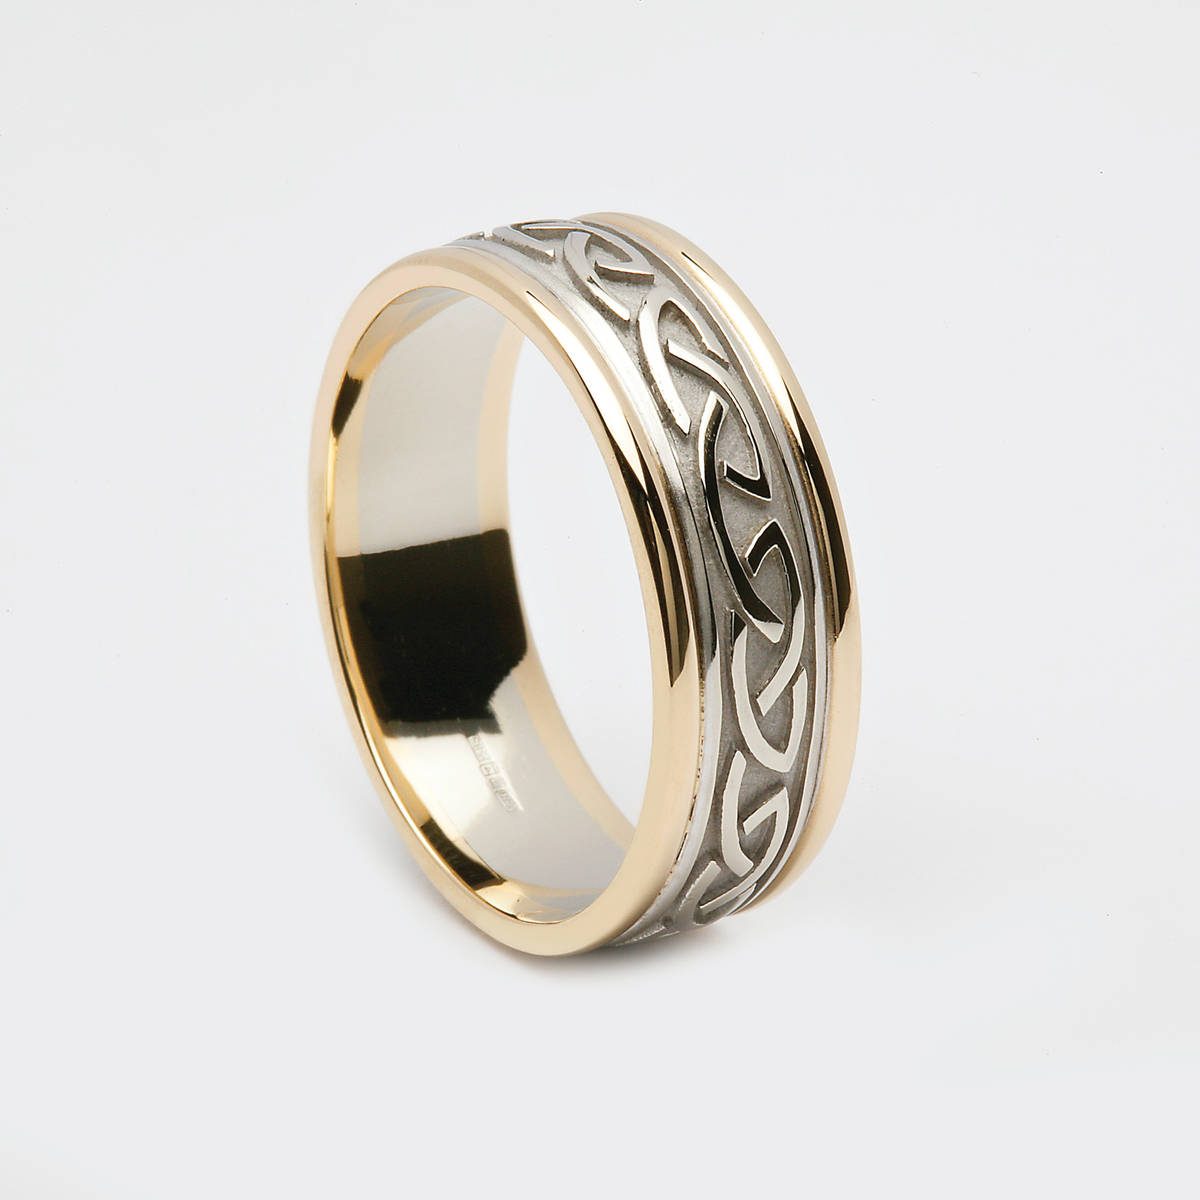 18 carat white gold man's Celtic ring